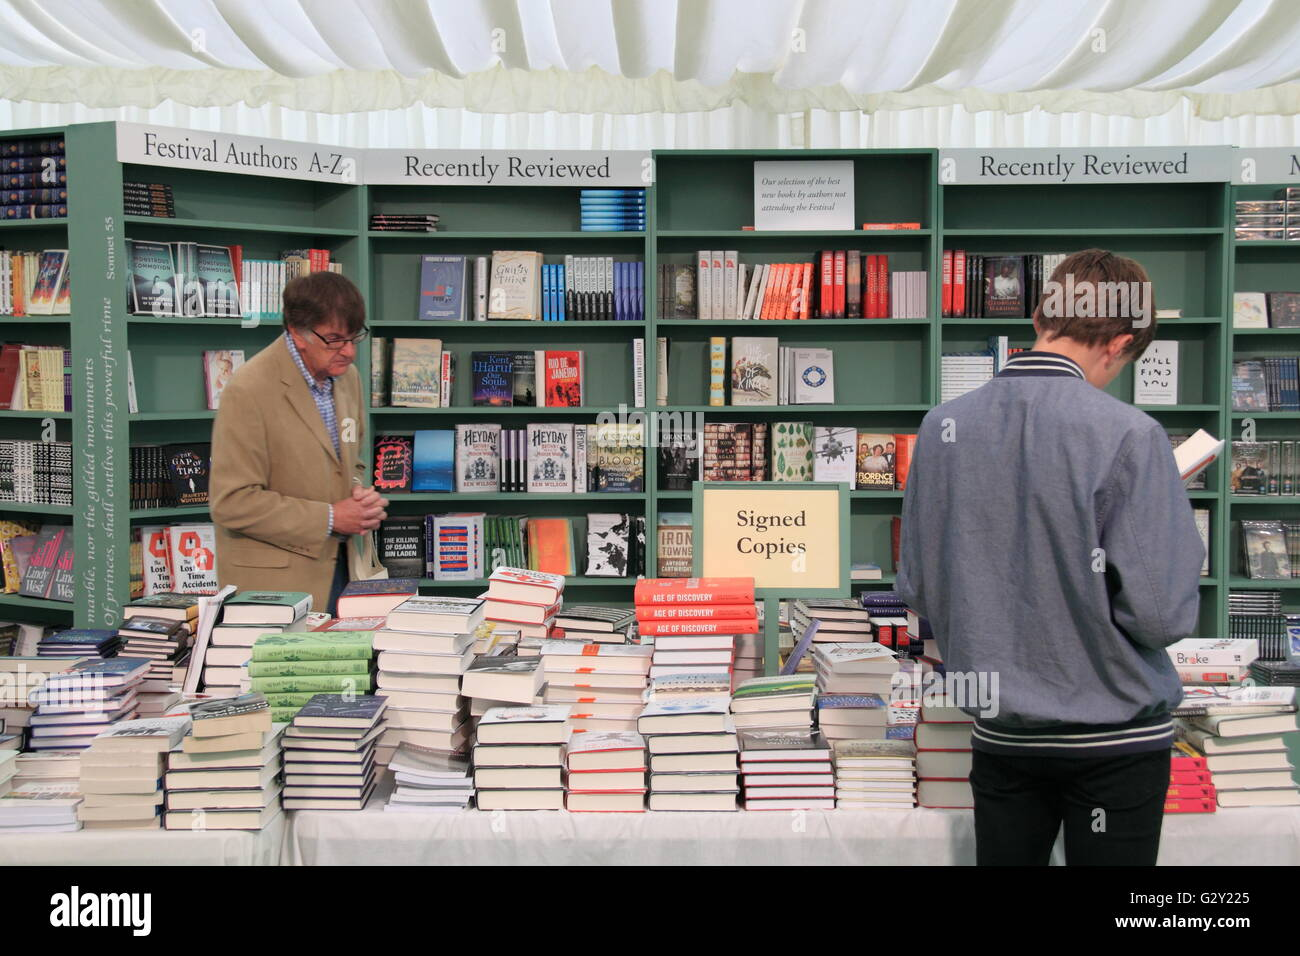 Signed copies, Hay Festival Bookshop 2016, Hay-on-Wye, Brecknockshire, Powys, Wales, Great Britain, United Kingdom, - Stock Image